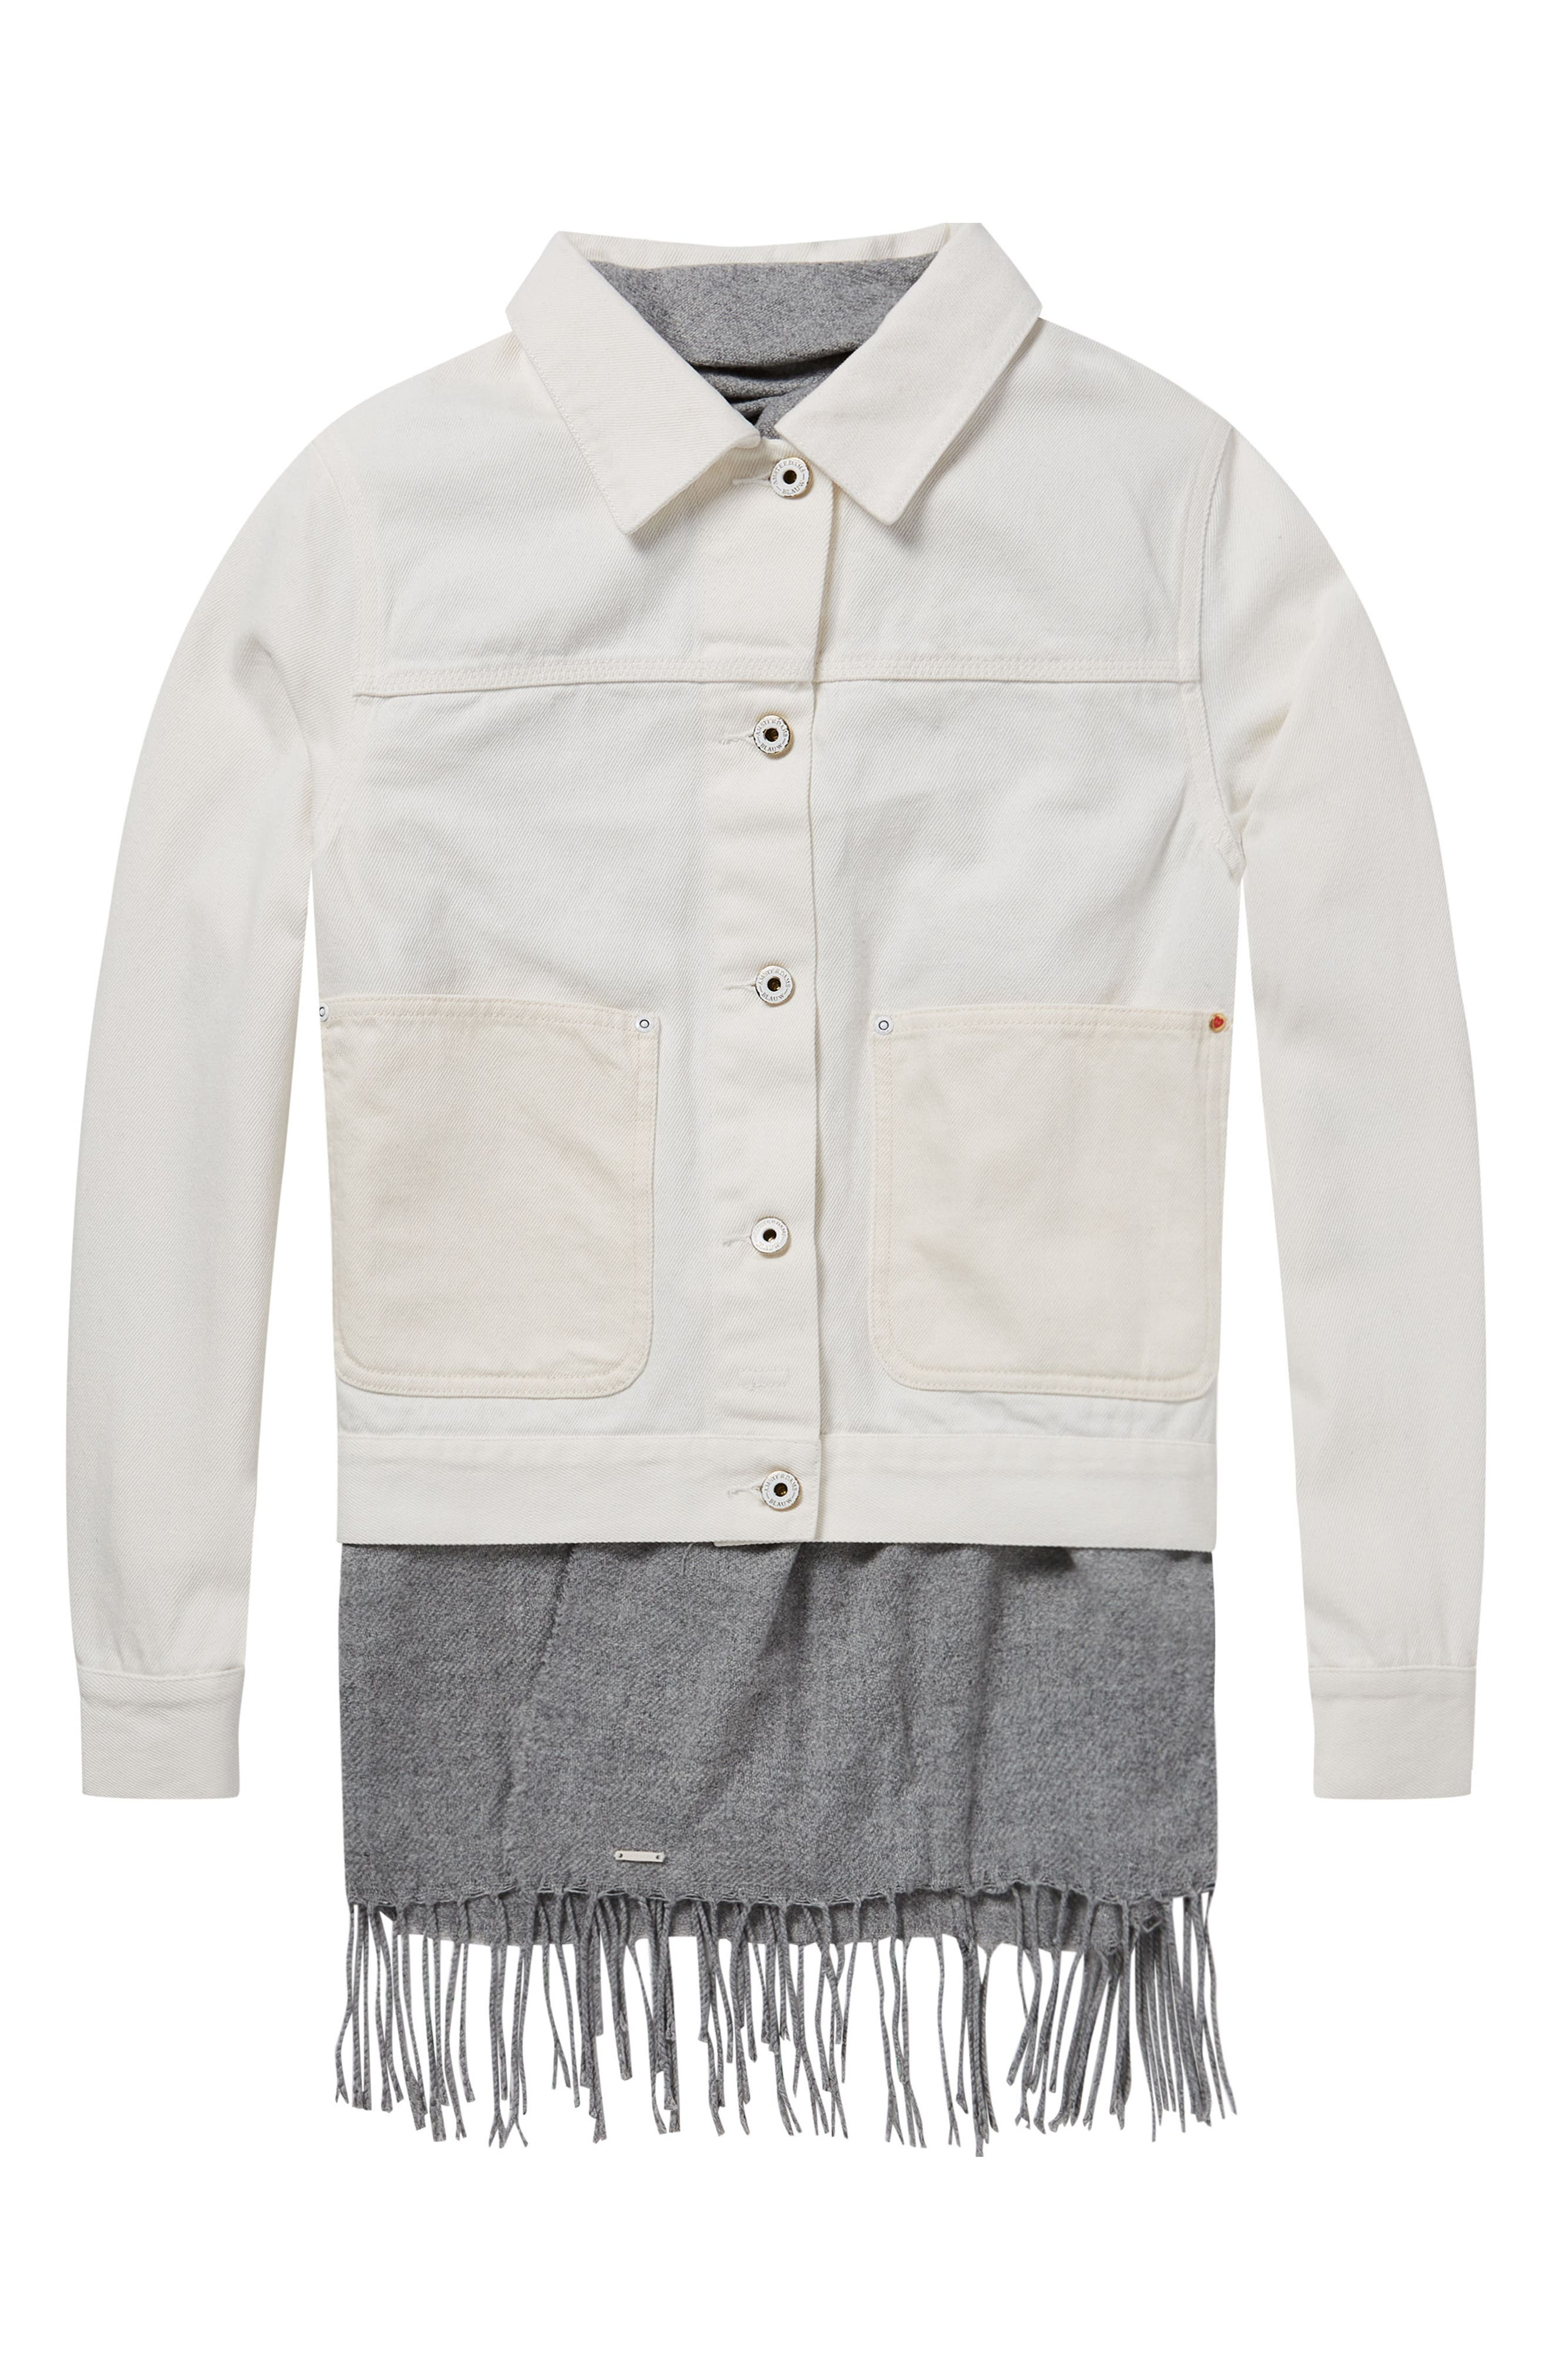 Moon Embroidered Denim Jacket with Scarf,                             Alternate thumbnail 3, color,                             03 Off White